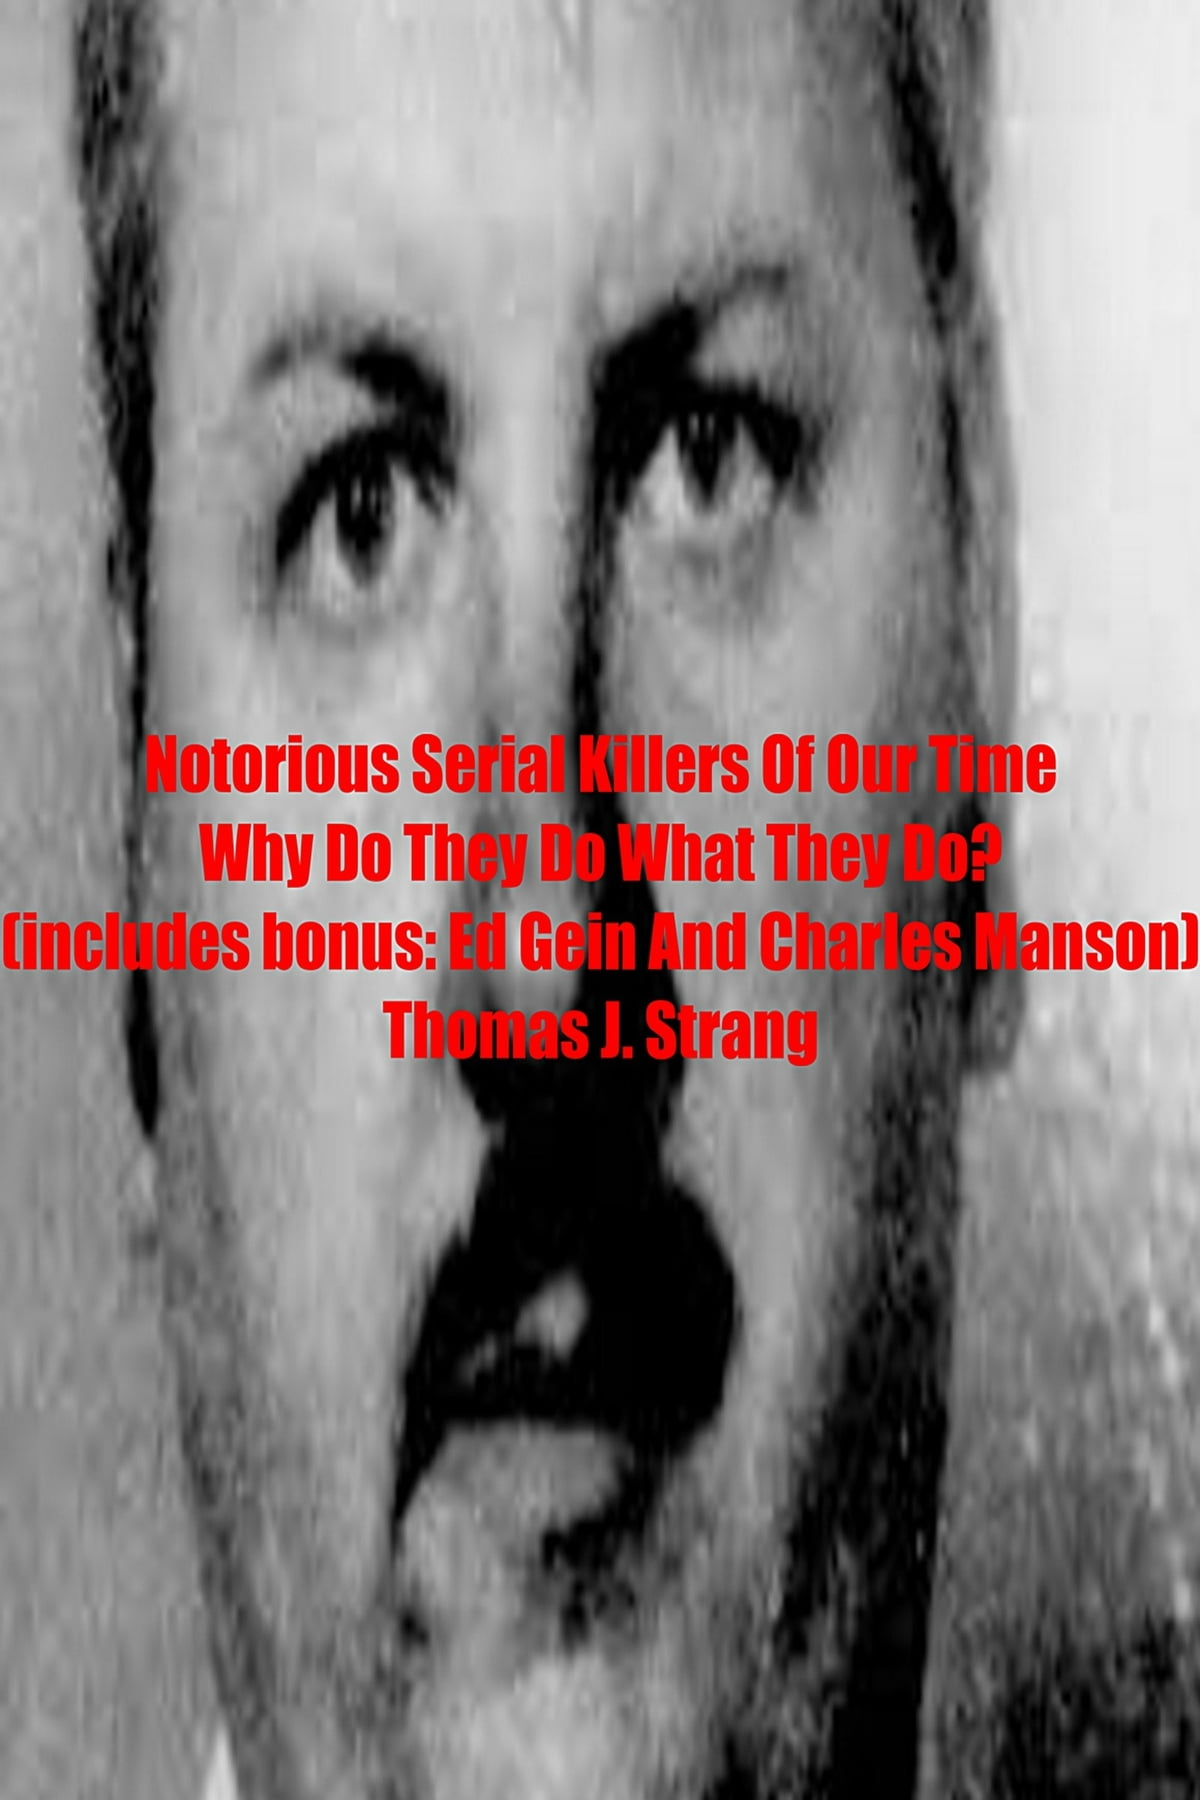 Notorious Serial Killers Of Our Time Why Do They Do What They Do? ebook by  Thomas J  Strang - Rakuten Kobo